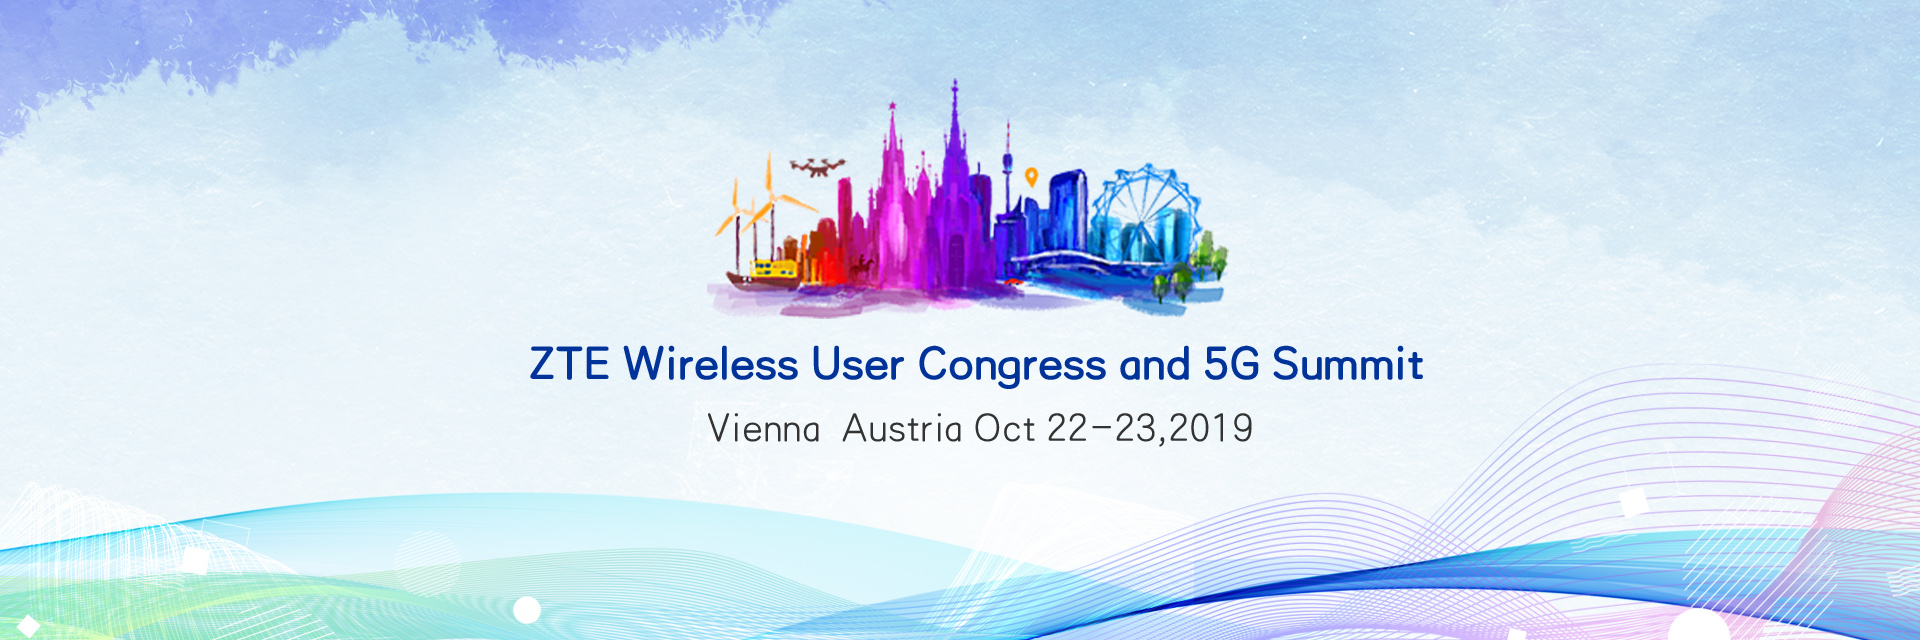 ZTE Wireless User Congress